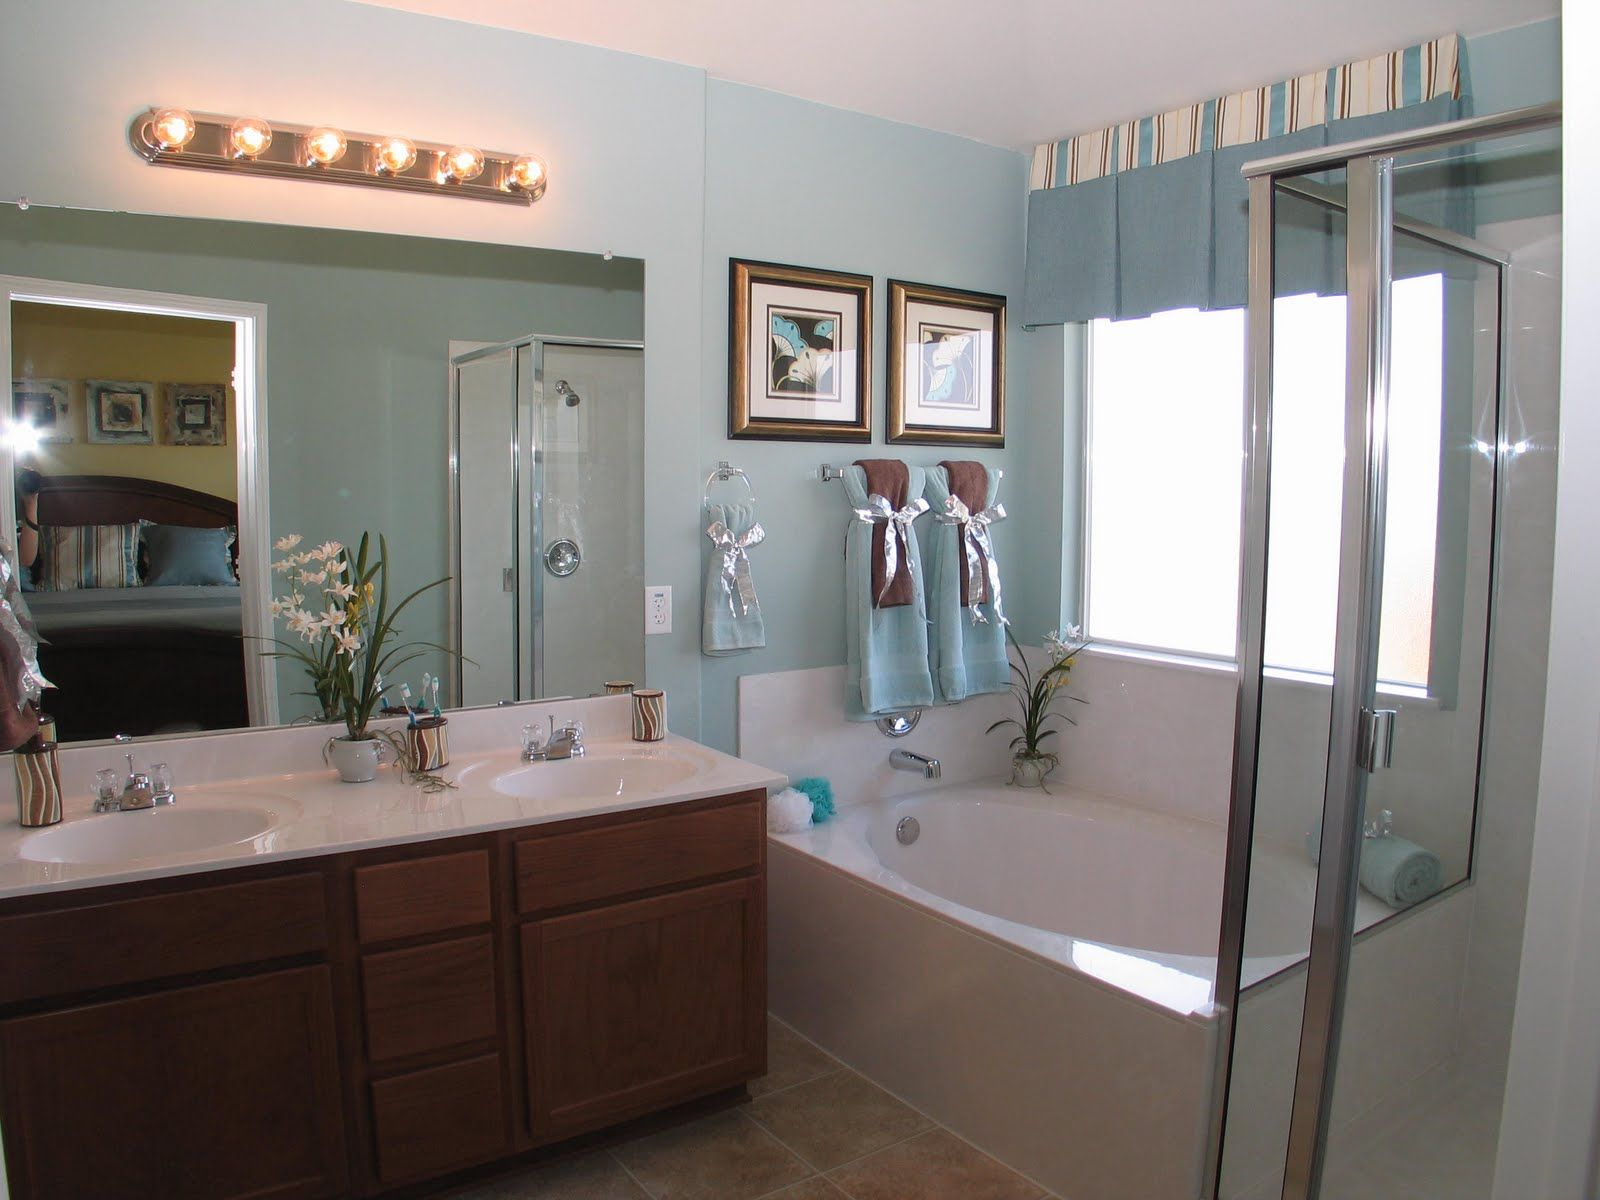 Big master bathroom ideas - Spa Bathroom Vanity Design Ideas